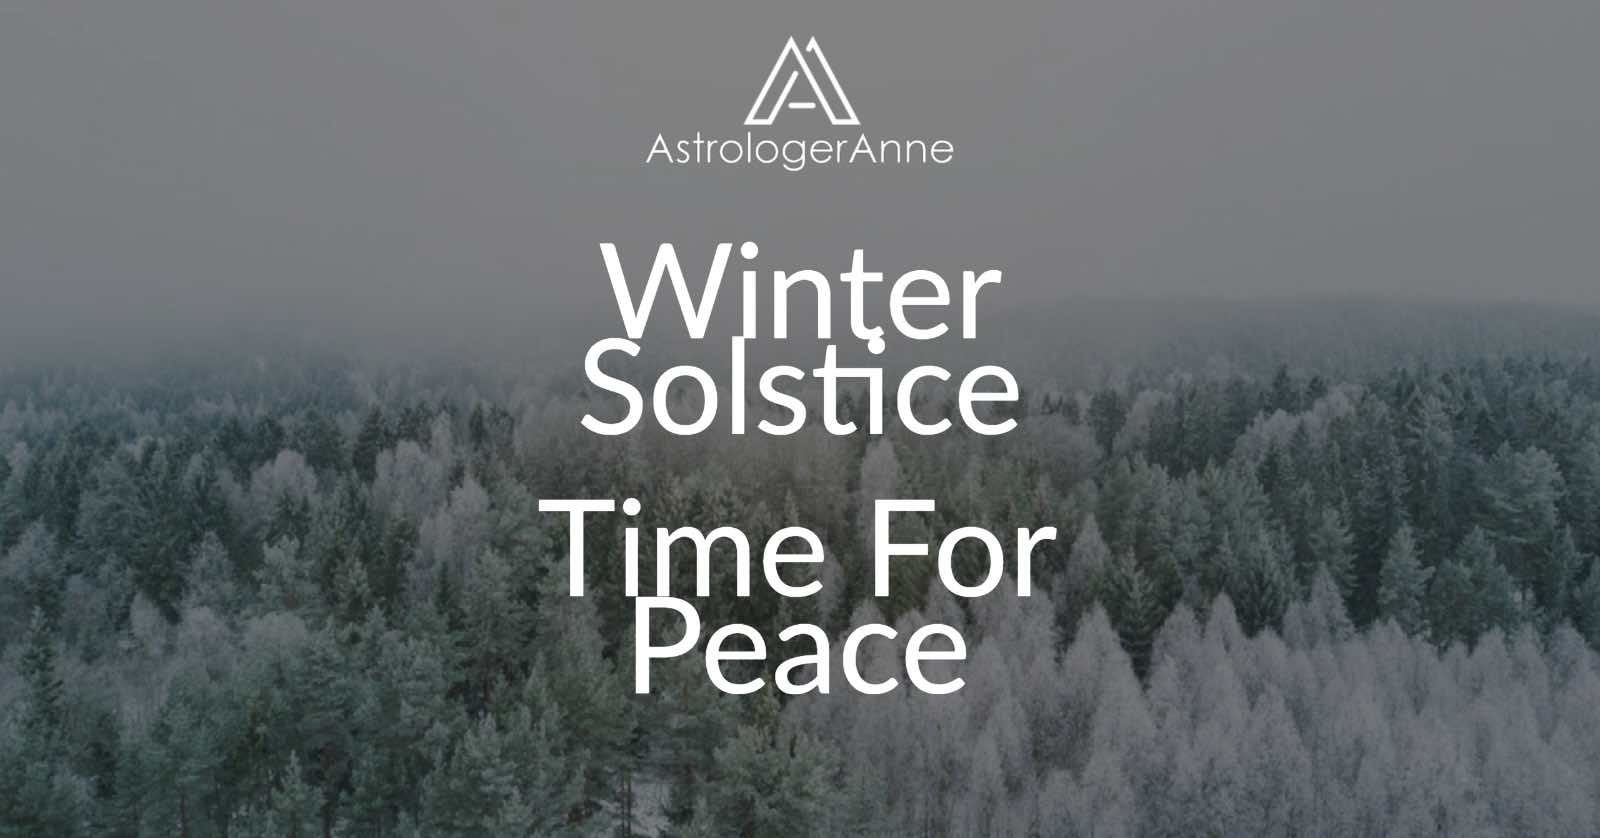 Winter solstice - time for peace